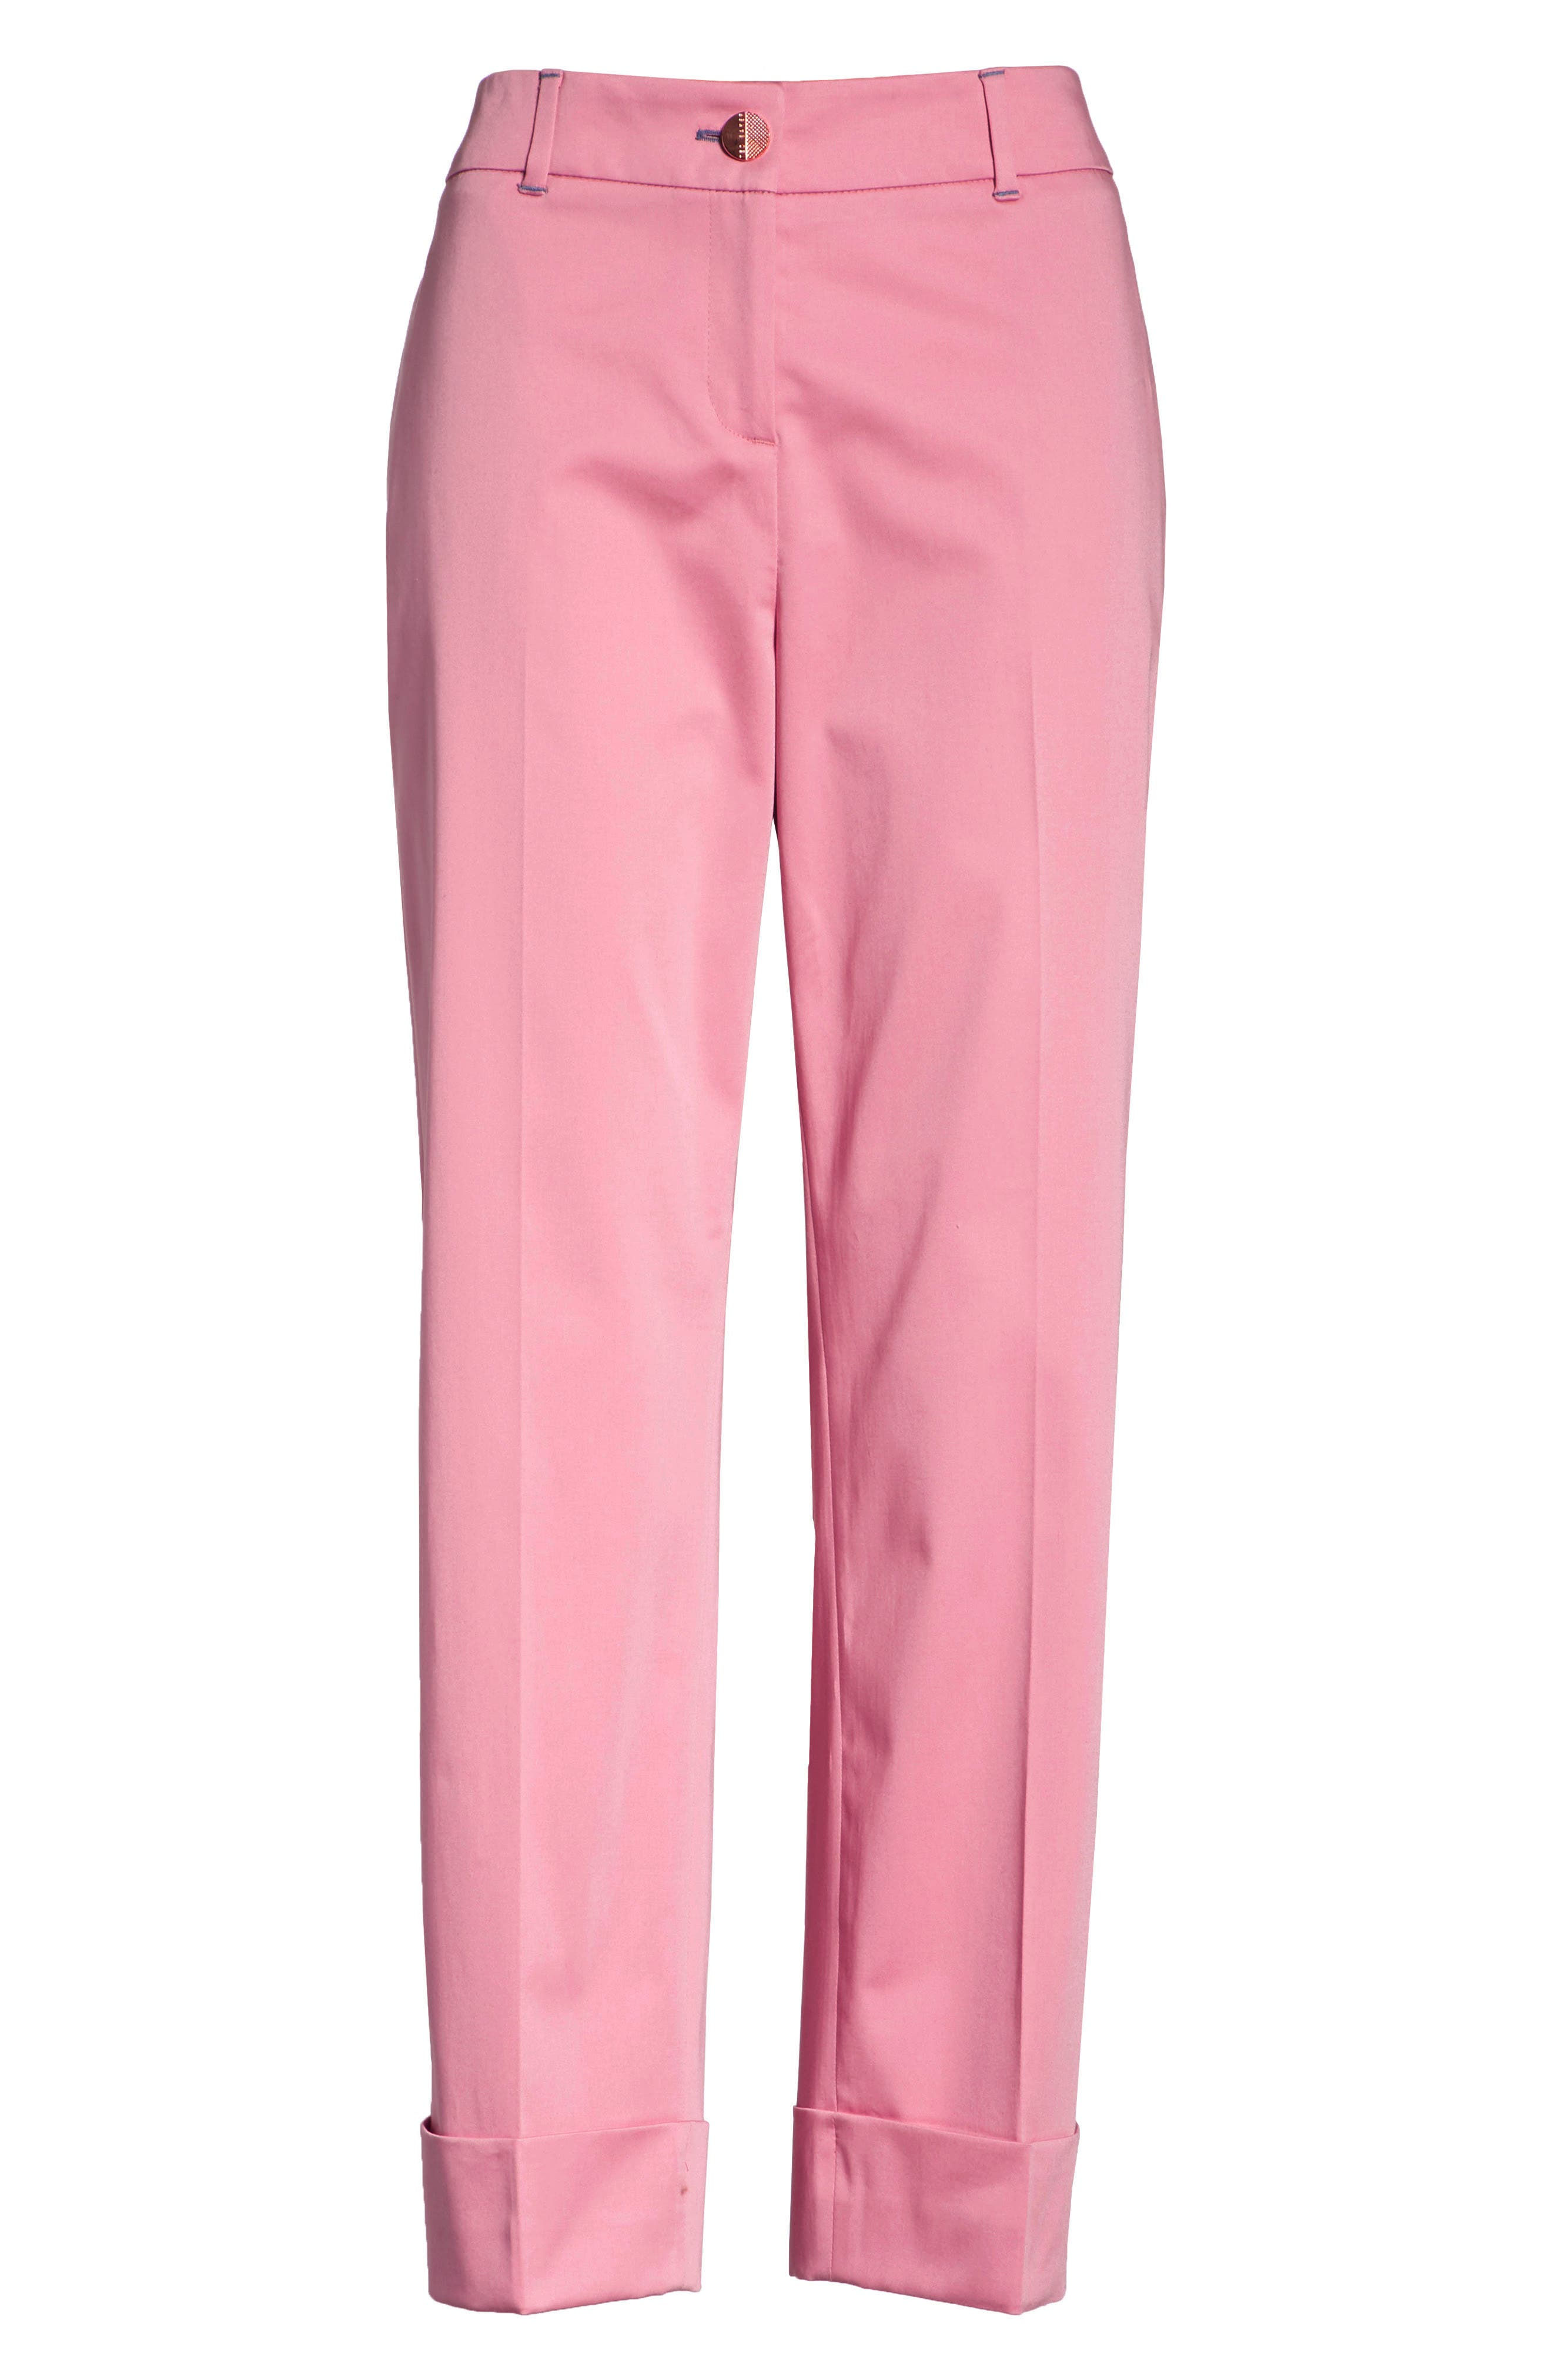 Saydii Deep Cuff Stretch Cotton Chino Pants,                             Alternate thumbnail 6, color,                             652